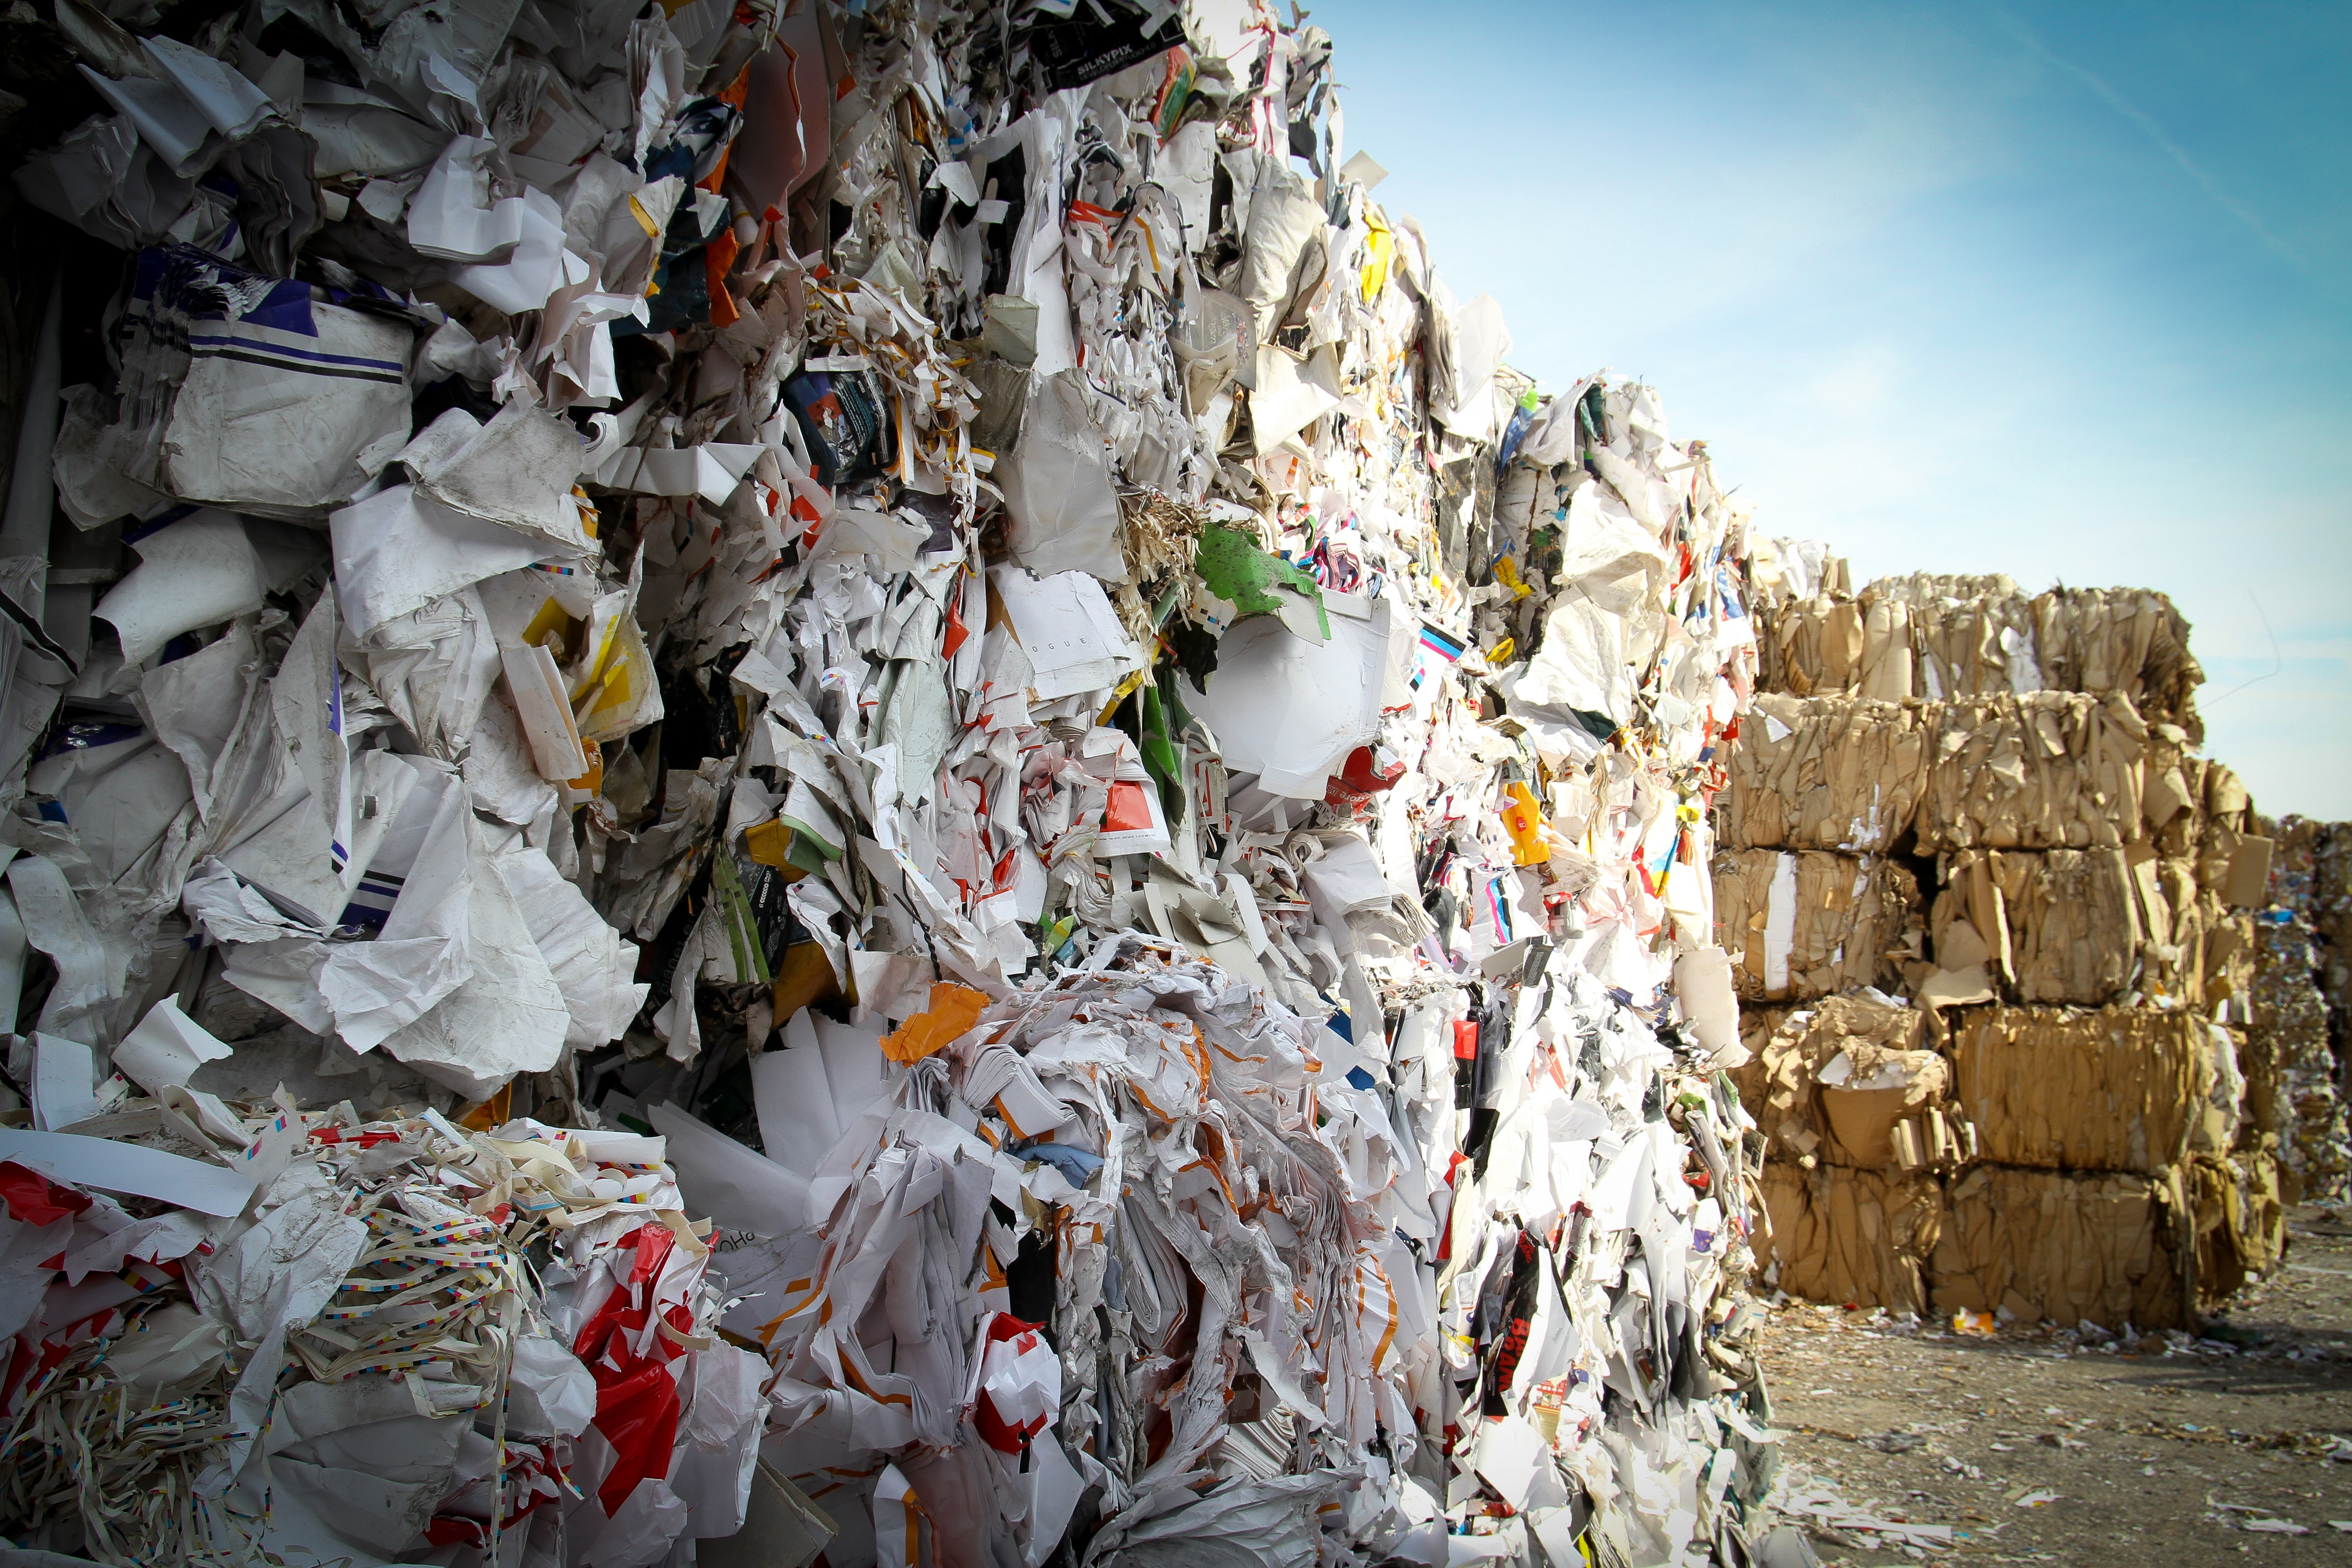 paper and plastic product returns are a major source of waste